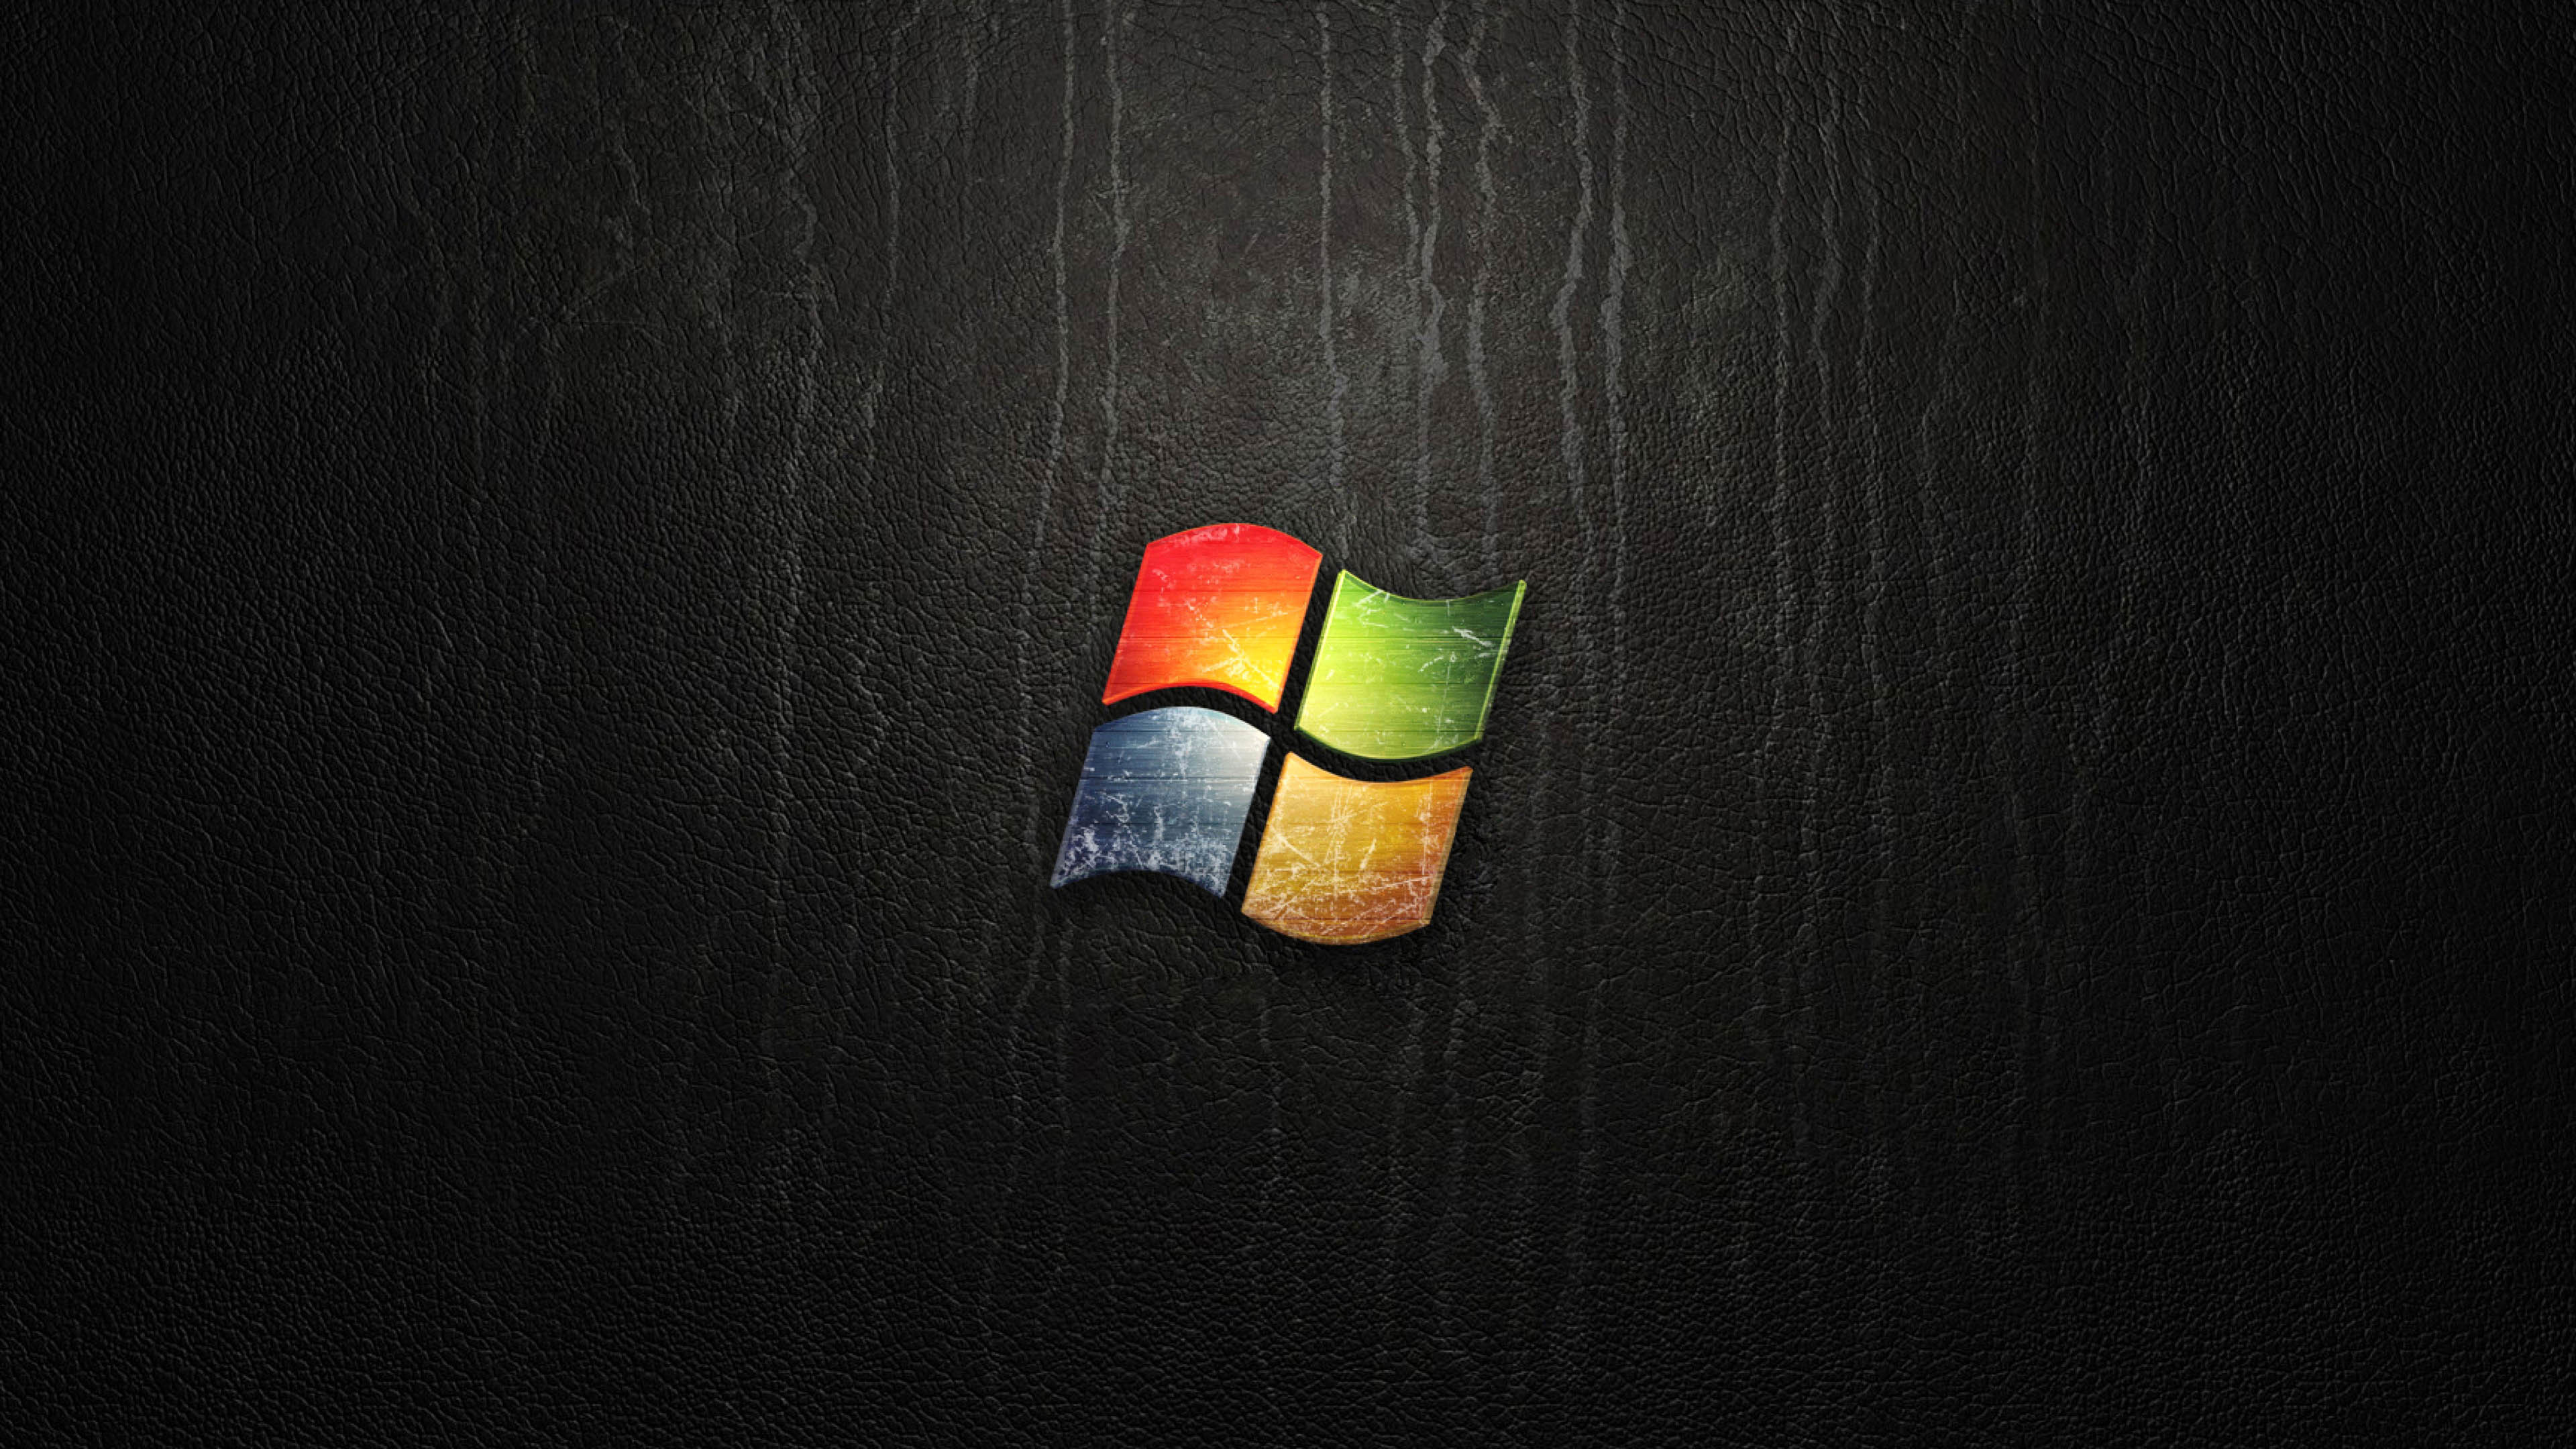 Windows Logo on Leather Texture wallpaper